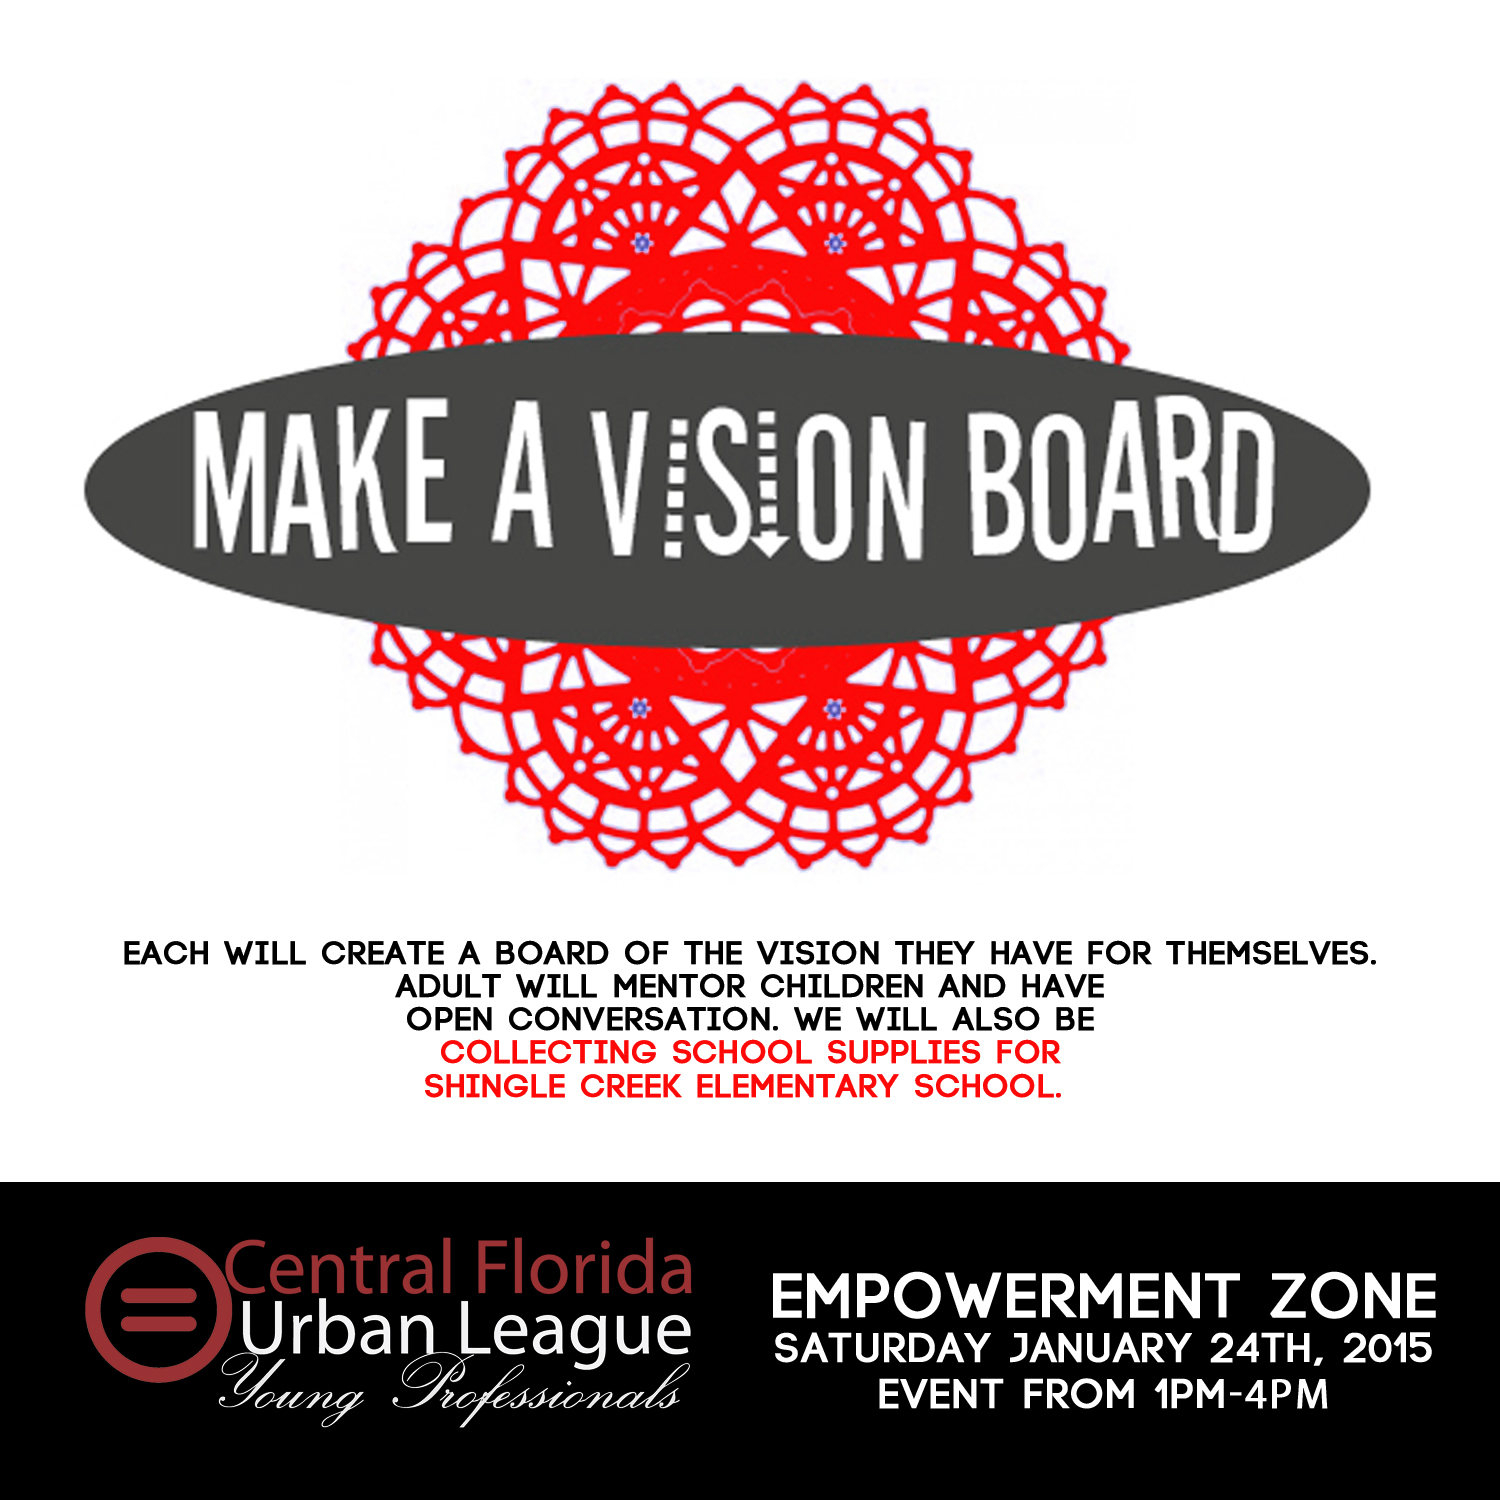 Manifest the Vision, Vision Board Party Event | WQQK-FM |Events Vision Board